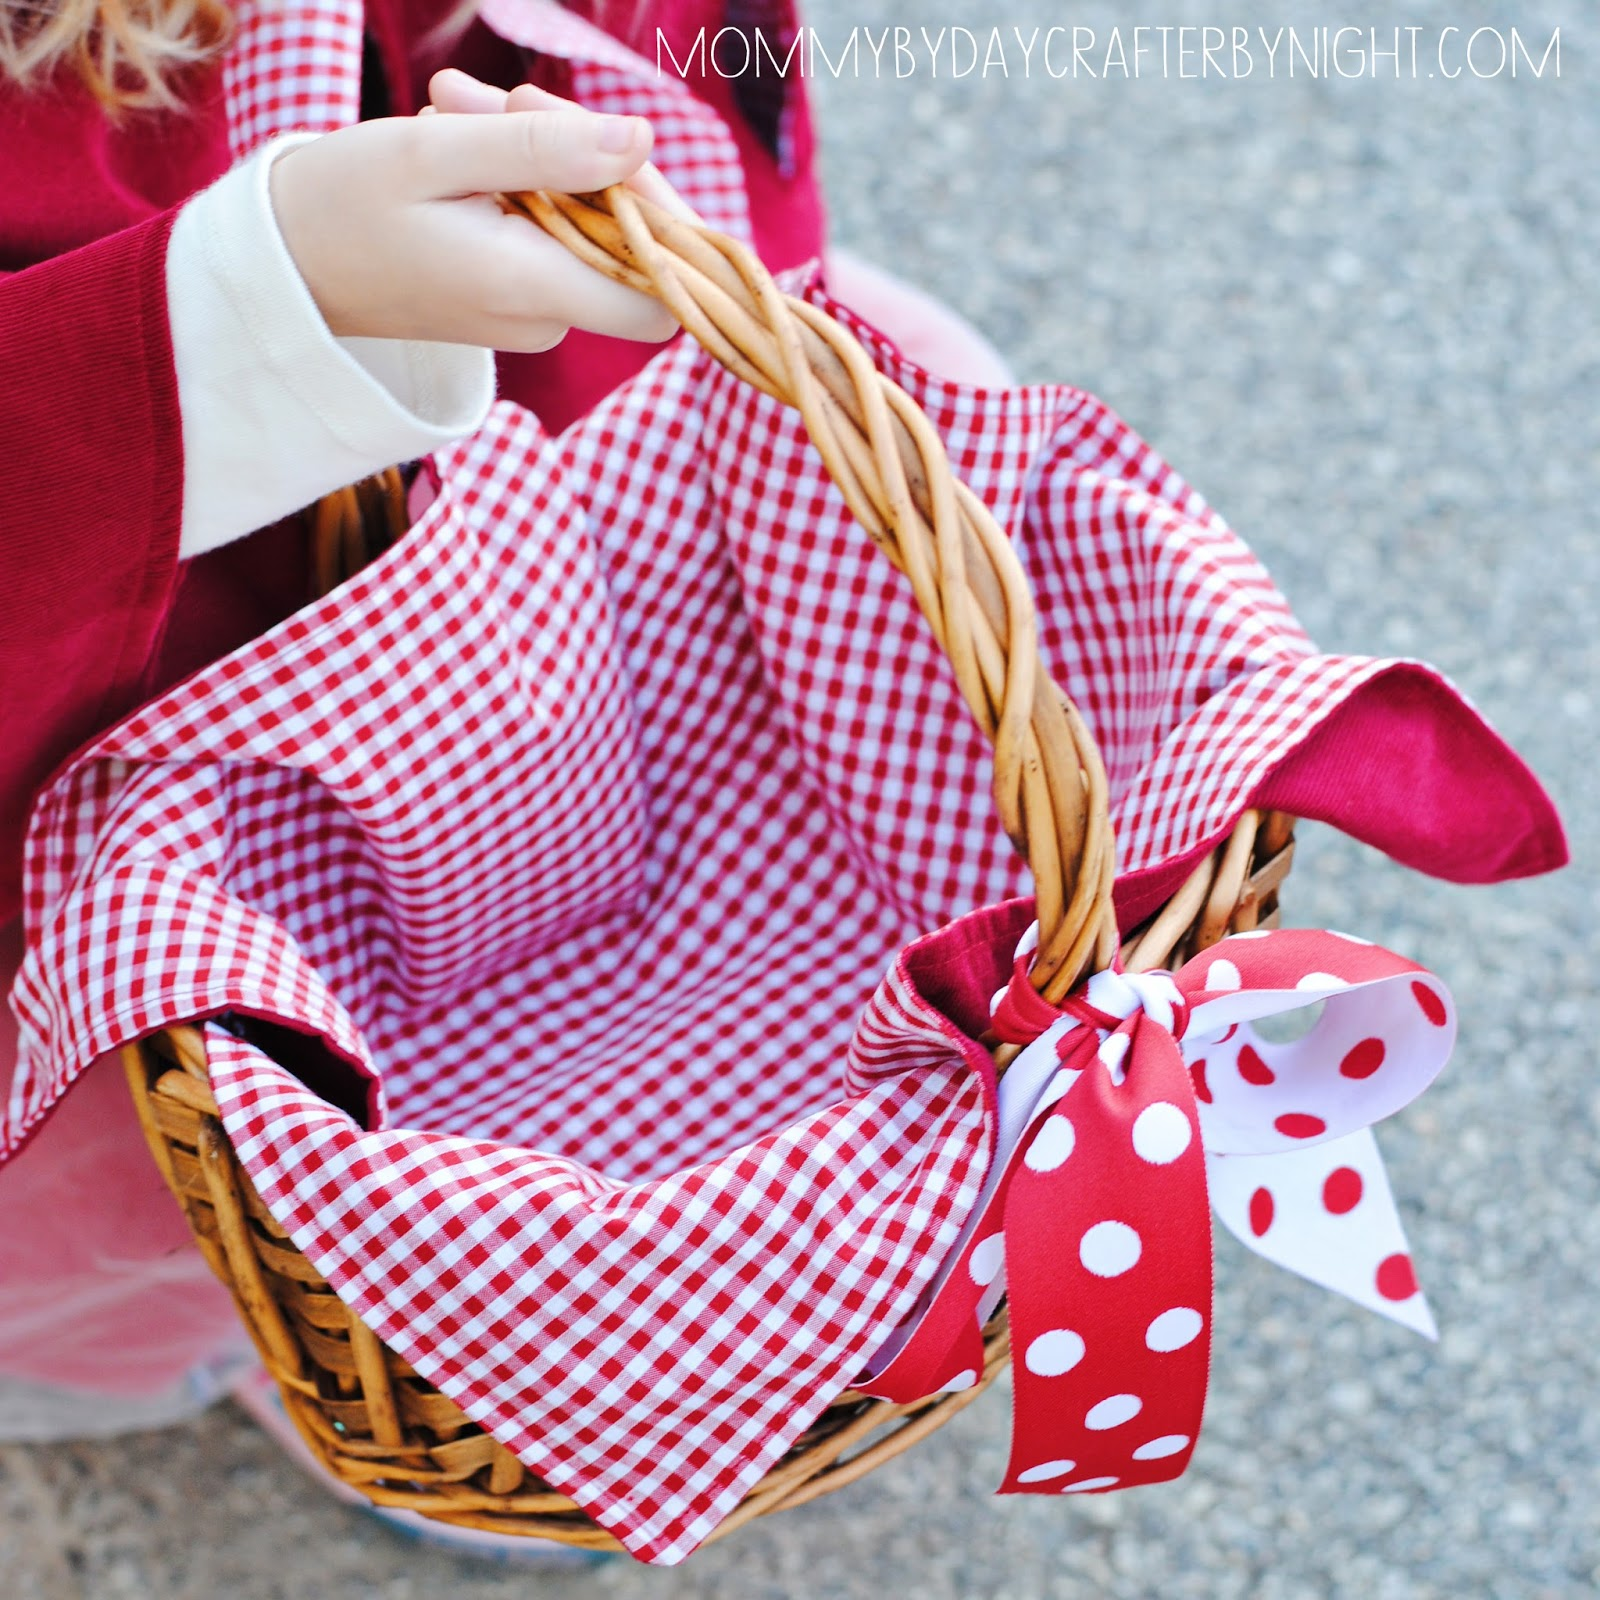 White apron hobby lobby - The Last Element For The Costume Was Little Red S Basket I Found The Perfect Basket At Hobby Lobby And Used Leftovers Of The Fabrics And Ribbon To Make A